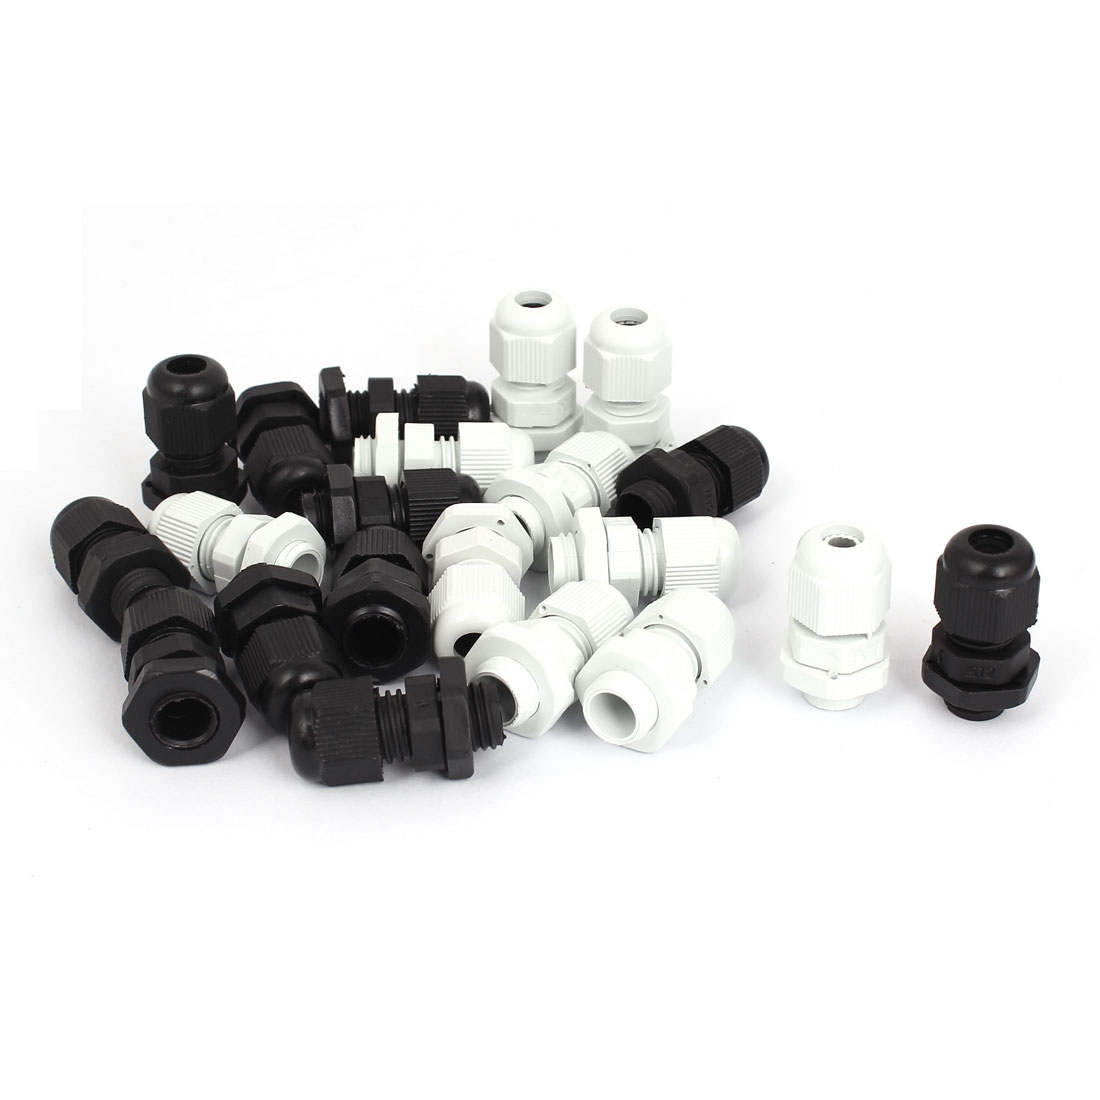 Black White Nylon PG7 3-6.5mm Wire Waterproof Fastener Locknut Cable Gland 21pcs